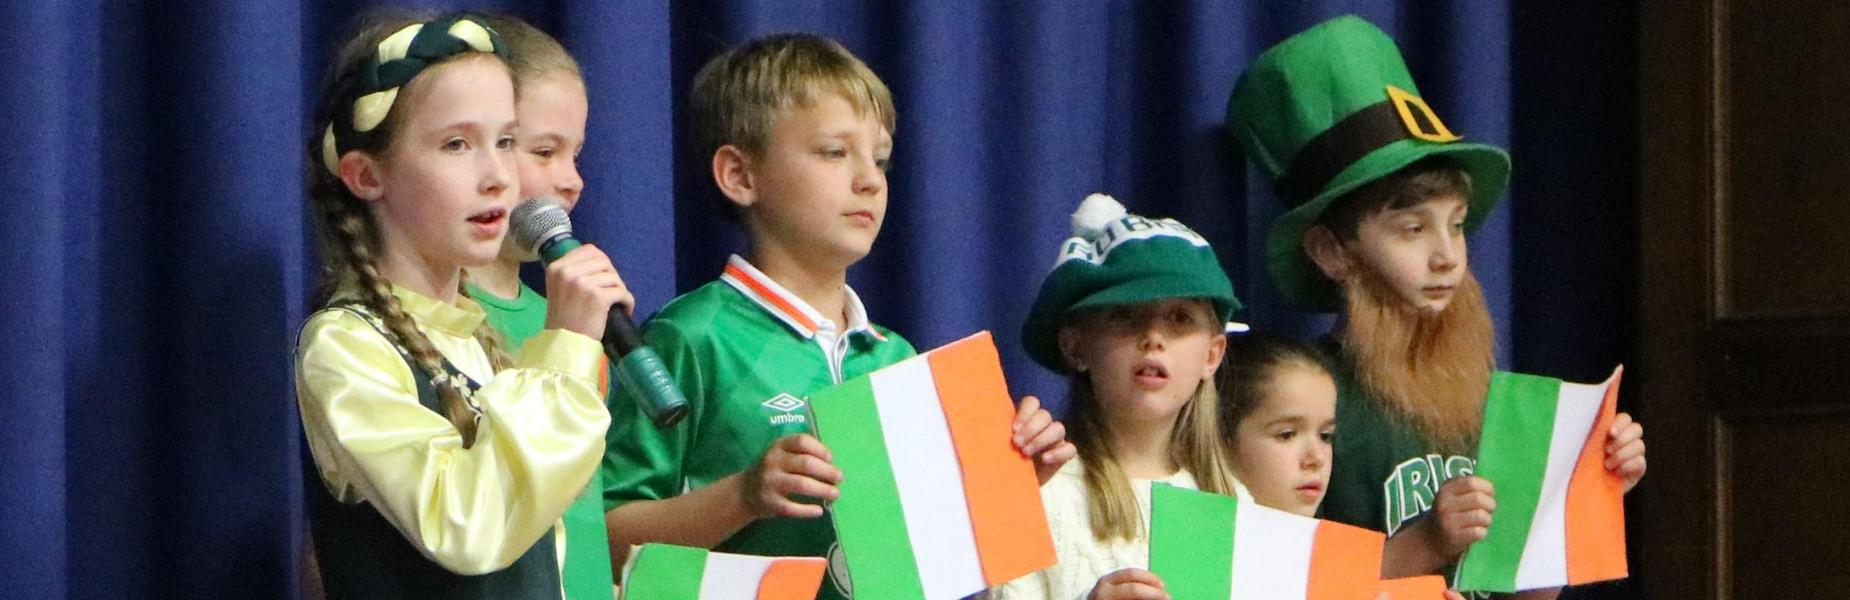 Photo of McKinley 4th graders representing Ireland in a recent International Celebration.